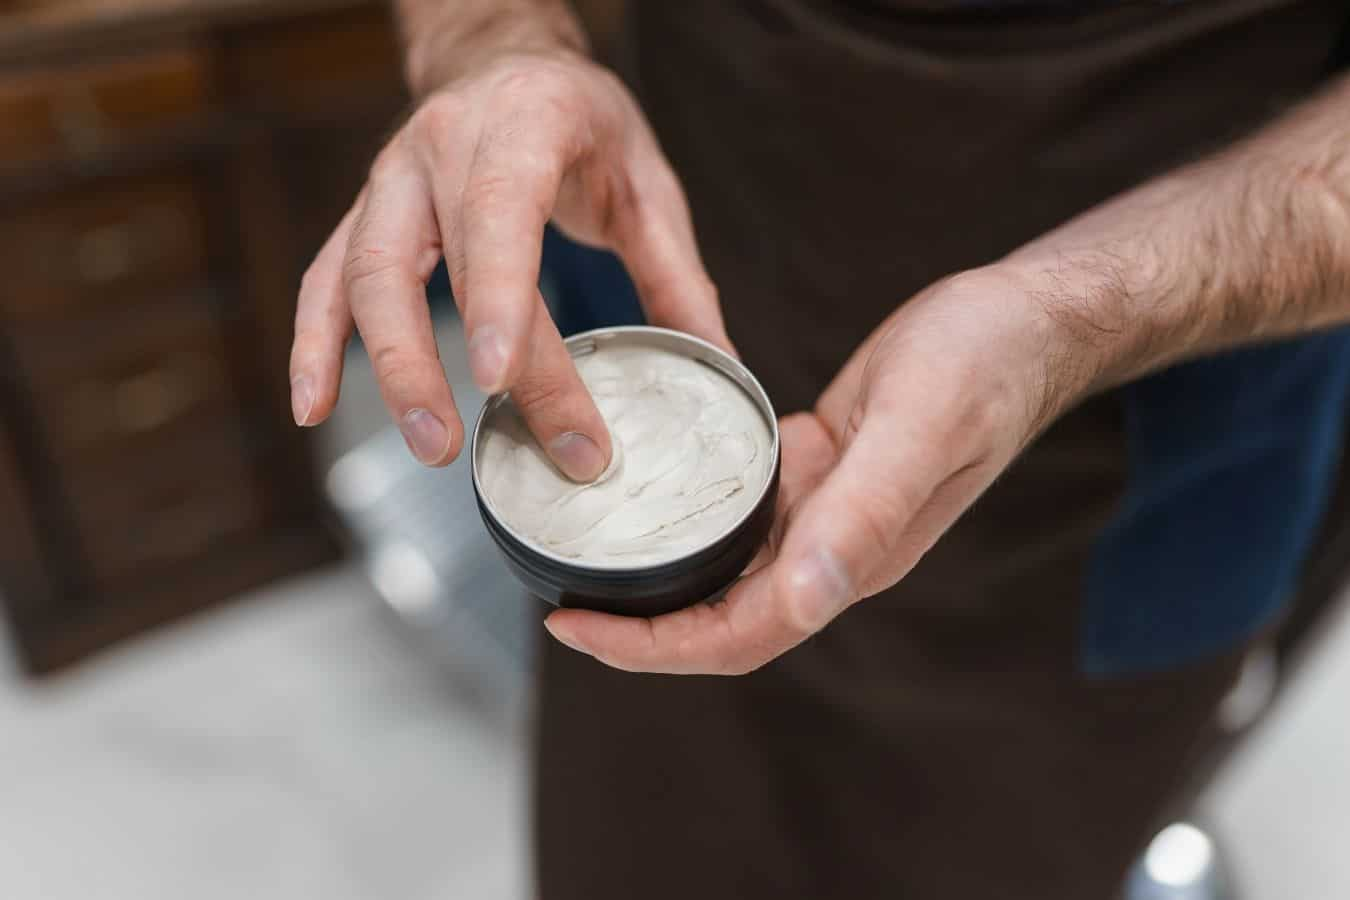 Things You Shouldn't Do when Removing Pomade